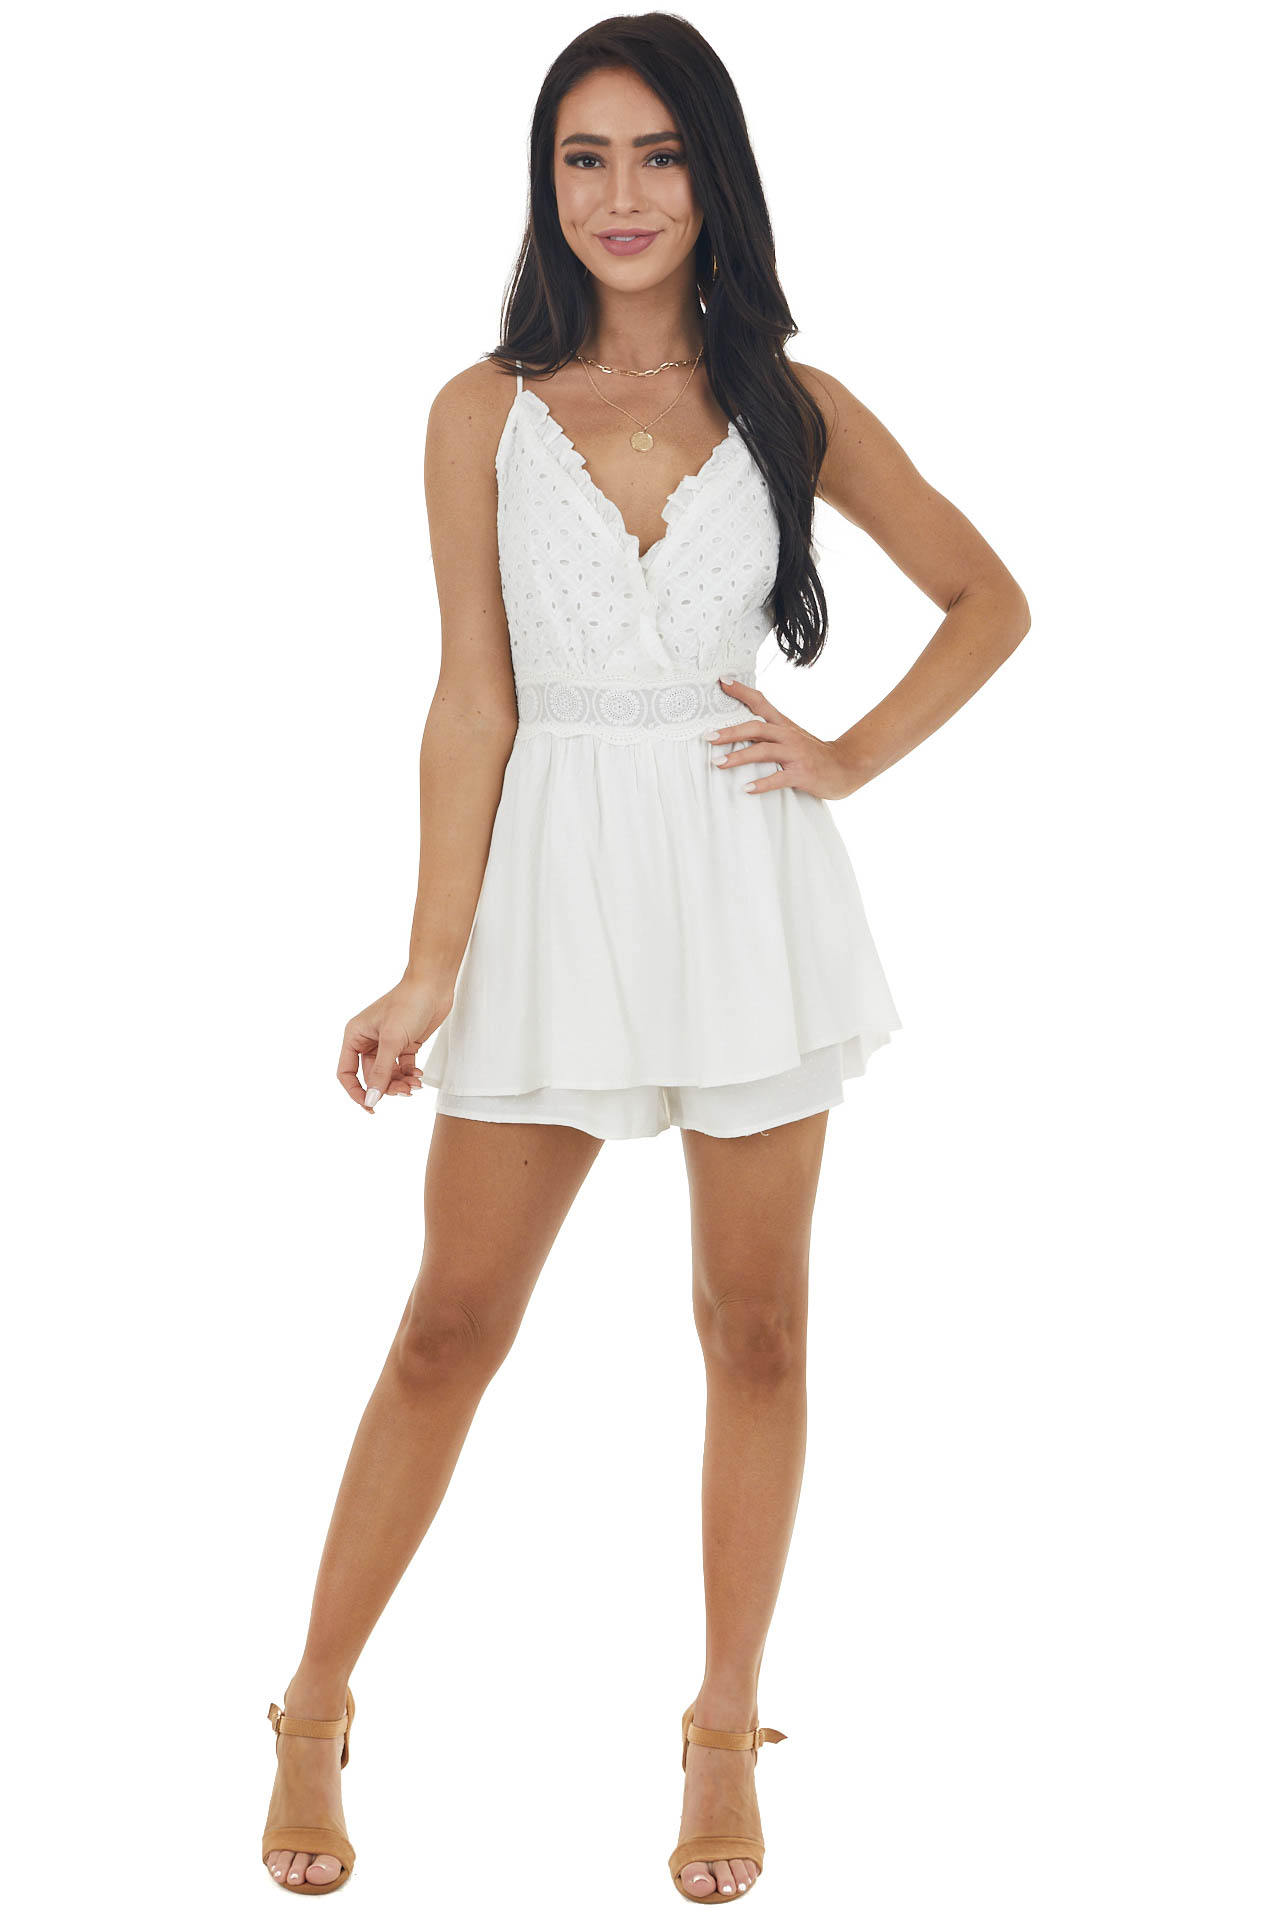 Off White Sleeveless Romper with Eyelet Lace Details